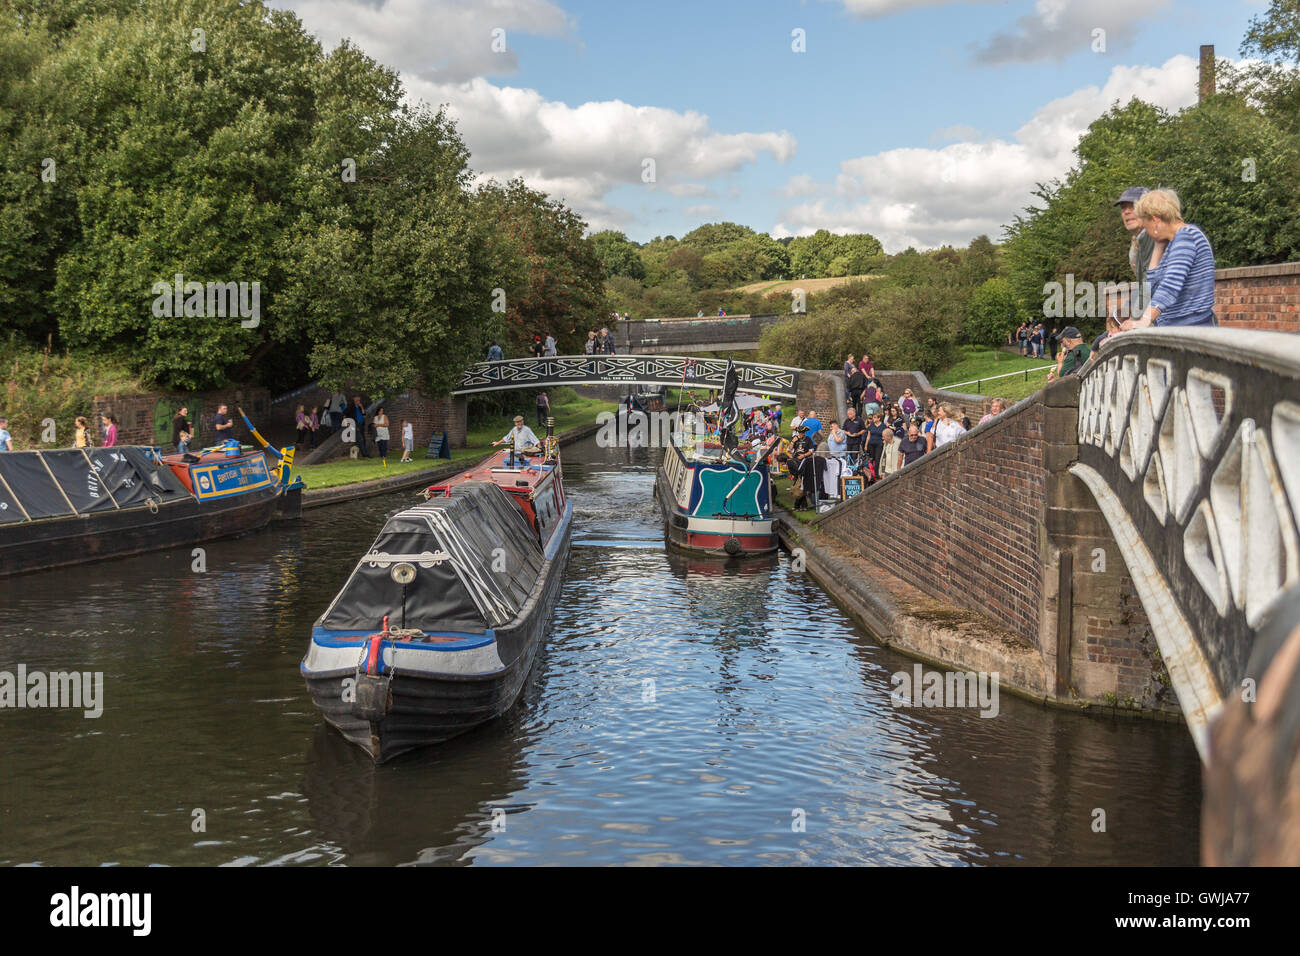 Narrowboats and spectators at the Black Country Boating Festival. Sunday 11th September 2016. - Stock Image